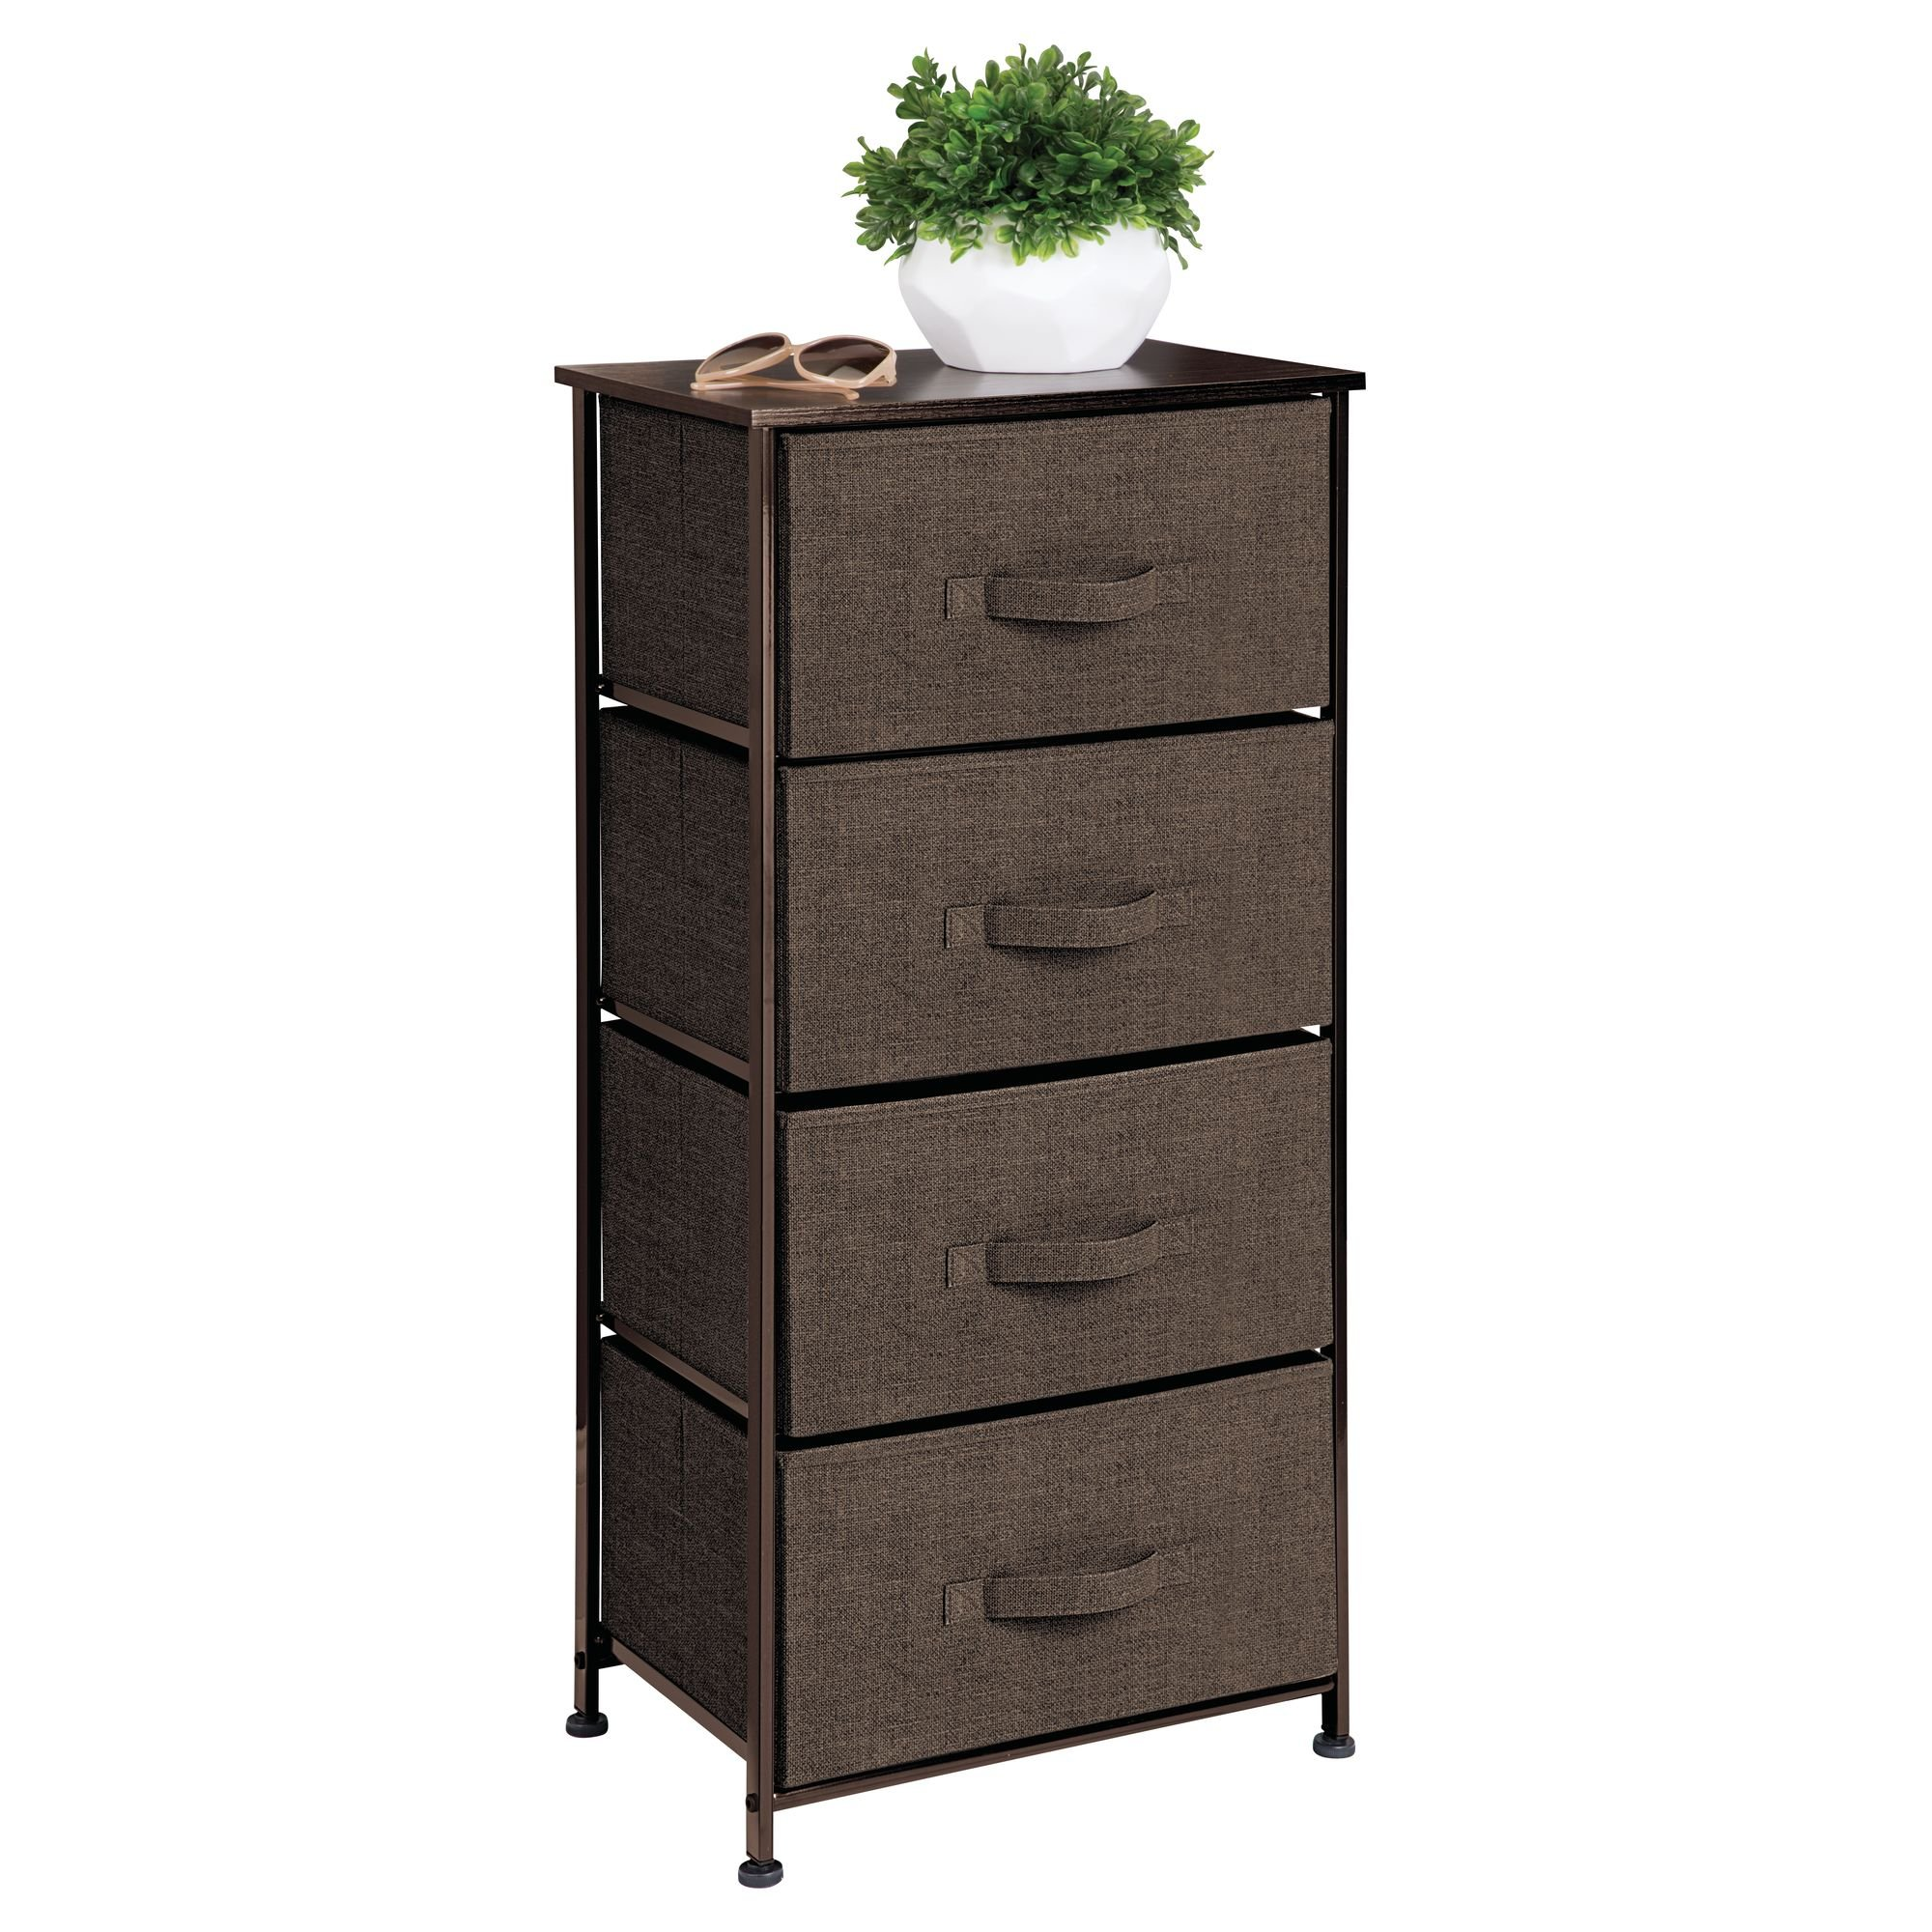 mDesign Vertical Dresser Storage Tower - Sturdy Steel Frame, Wood Top, Easy Pull Fabric Bins - Organizer Unit for Bedroom, Hallway, Entryway, Closets - Textured Print - 4 Drawers, Espresso by mDesign